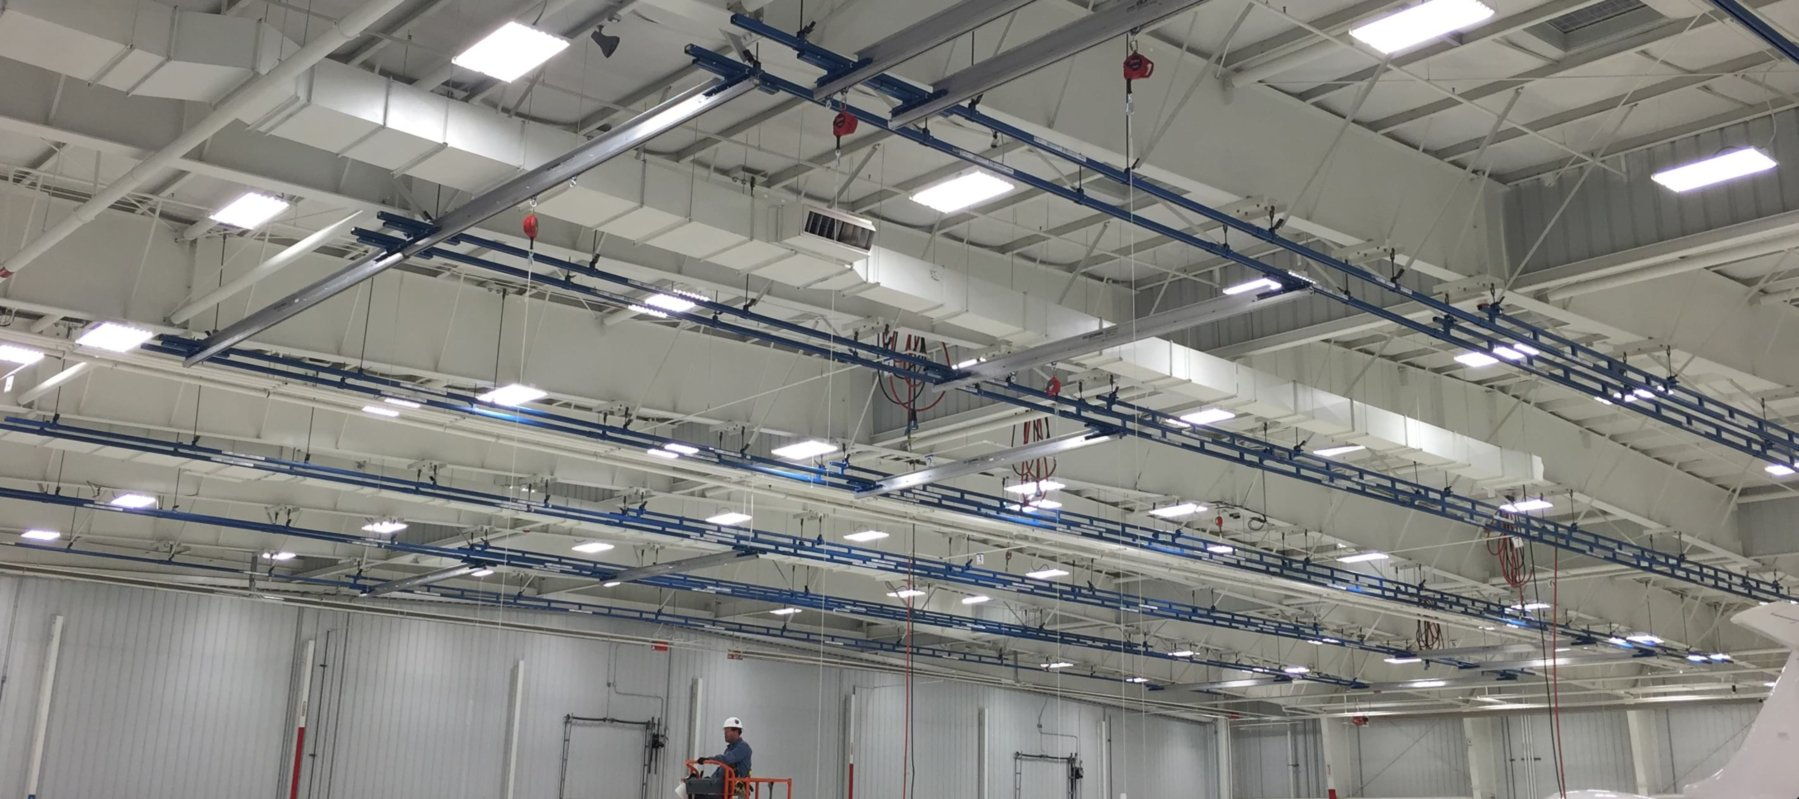 Overhead fall protection system